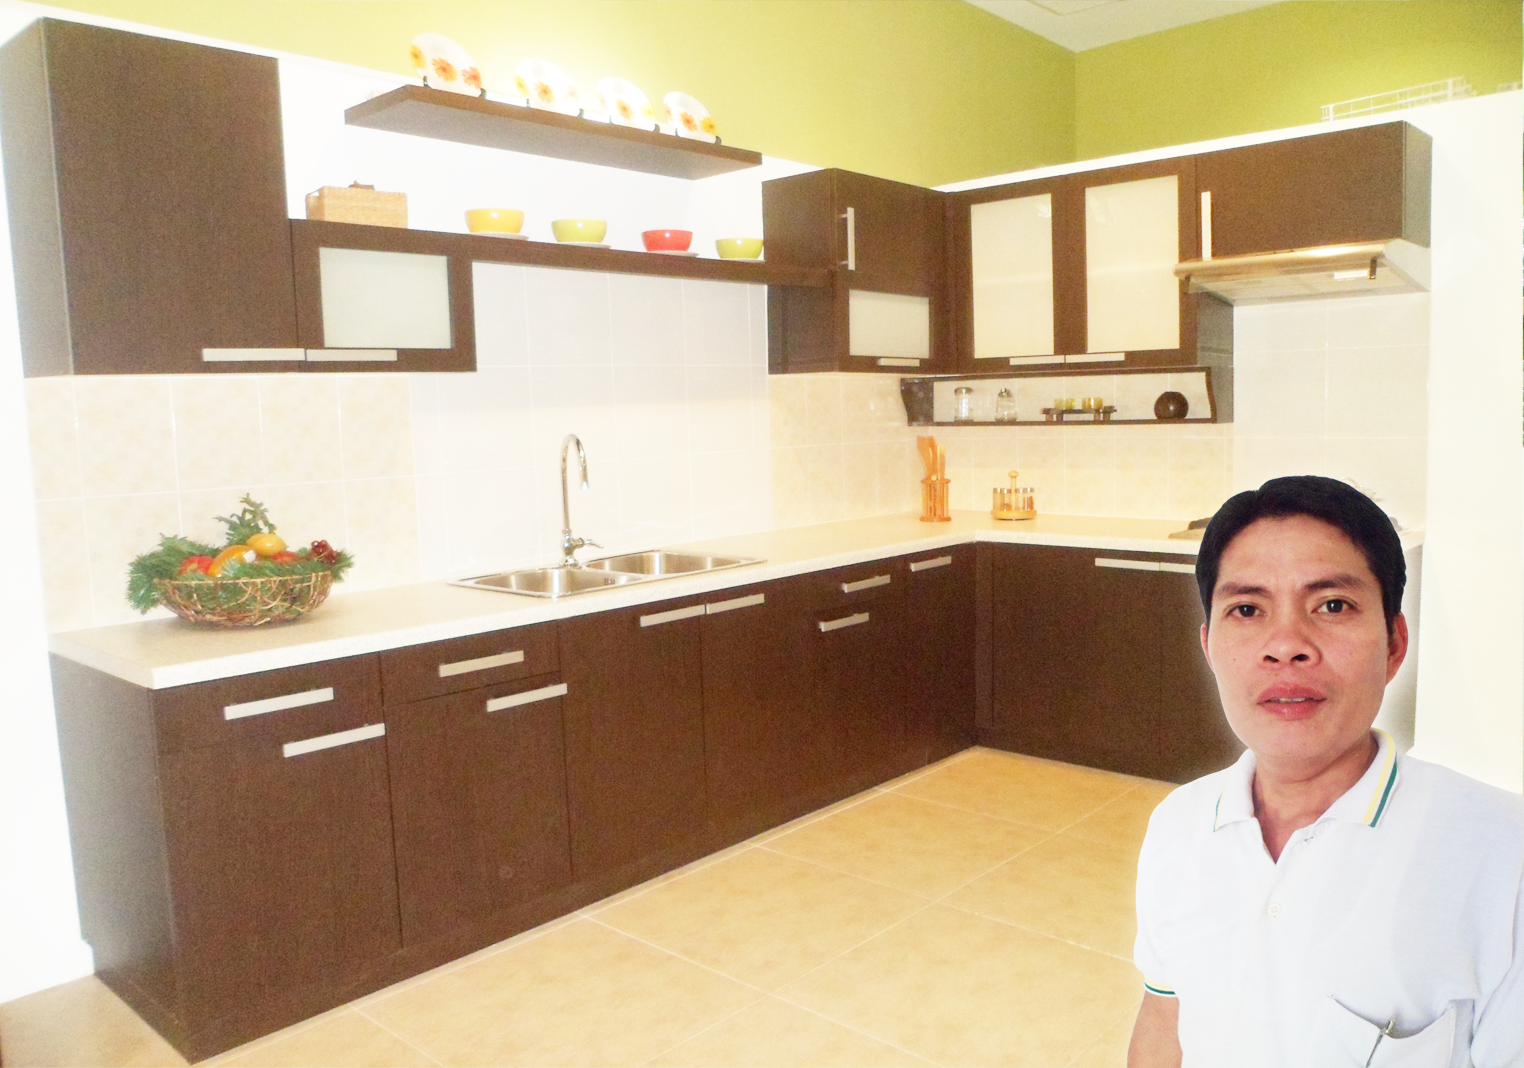 portable kitchen cabinets philippines - San Jose Kitchen Cabinet